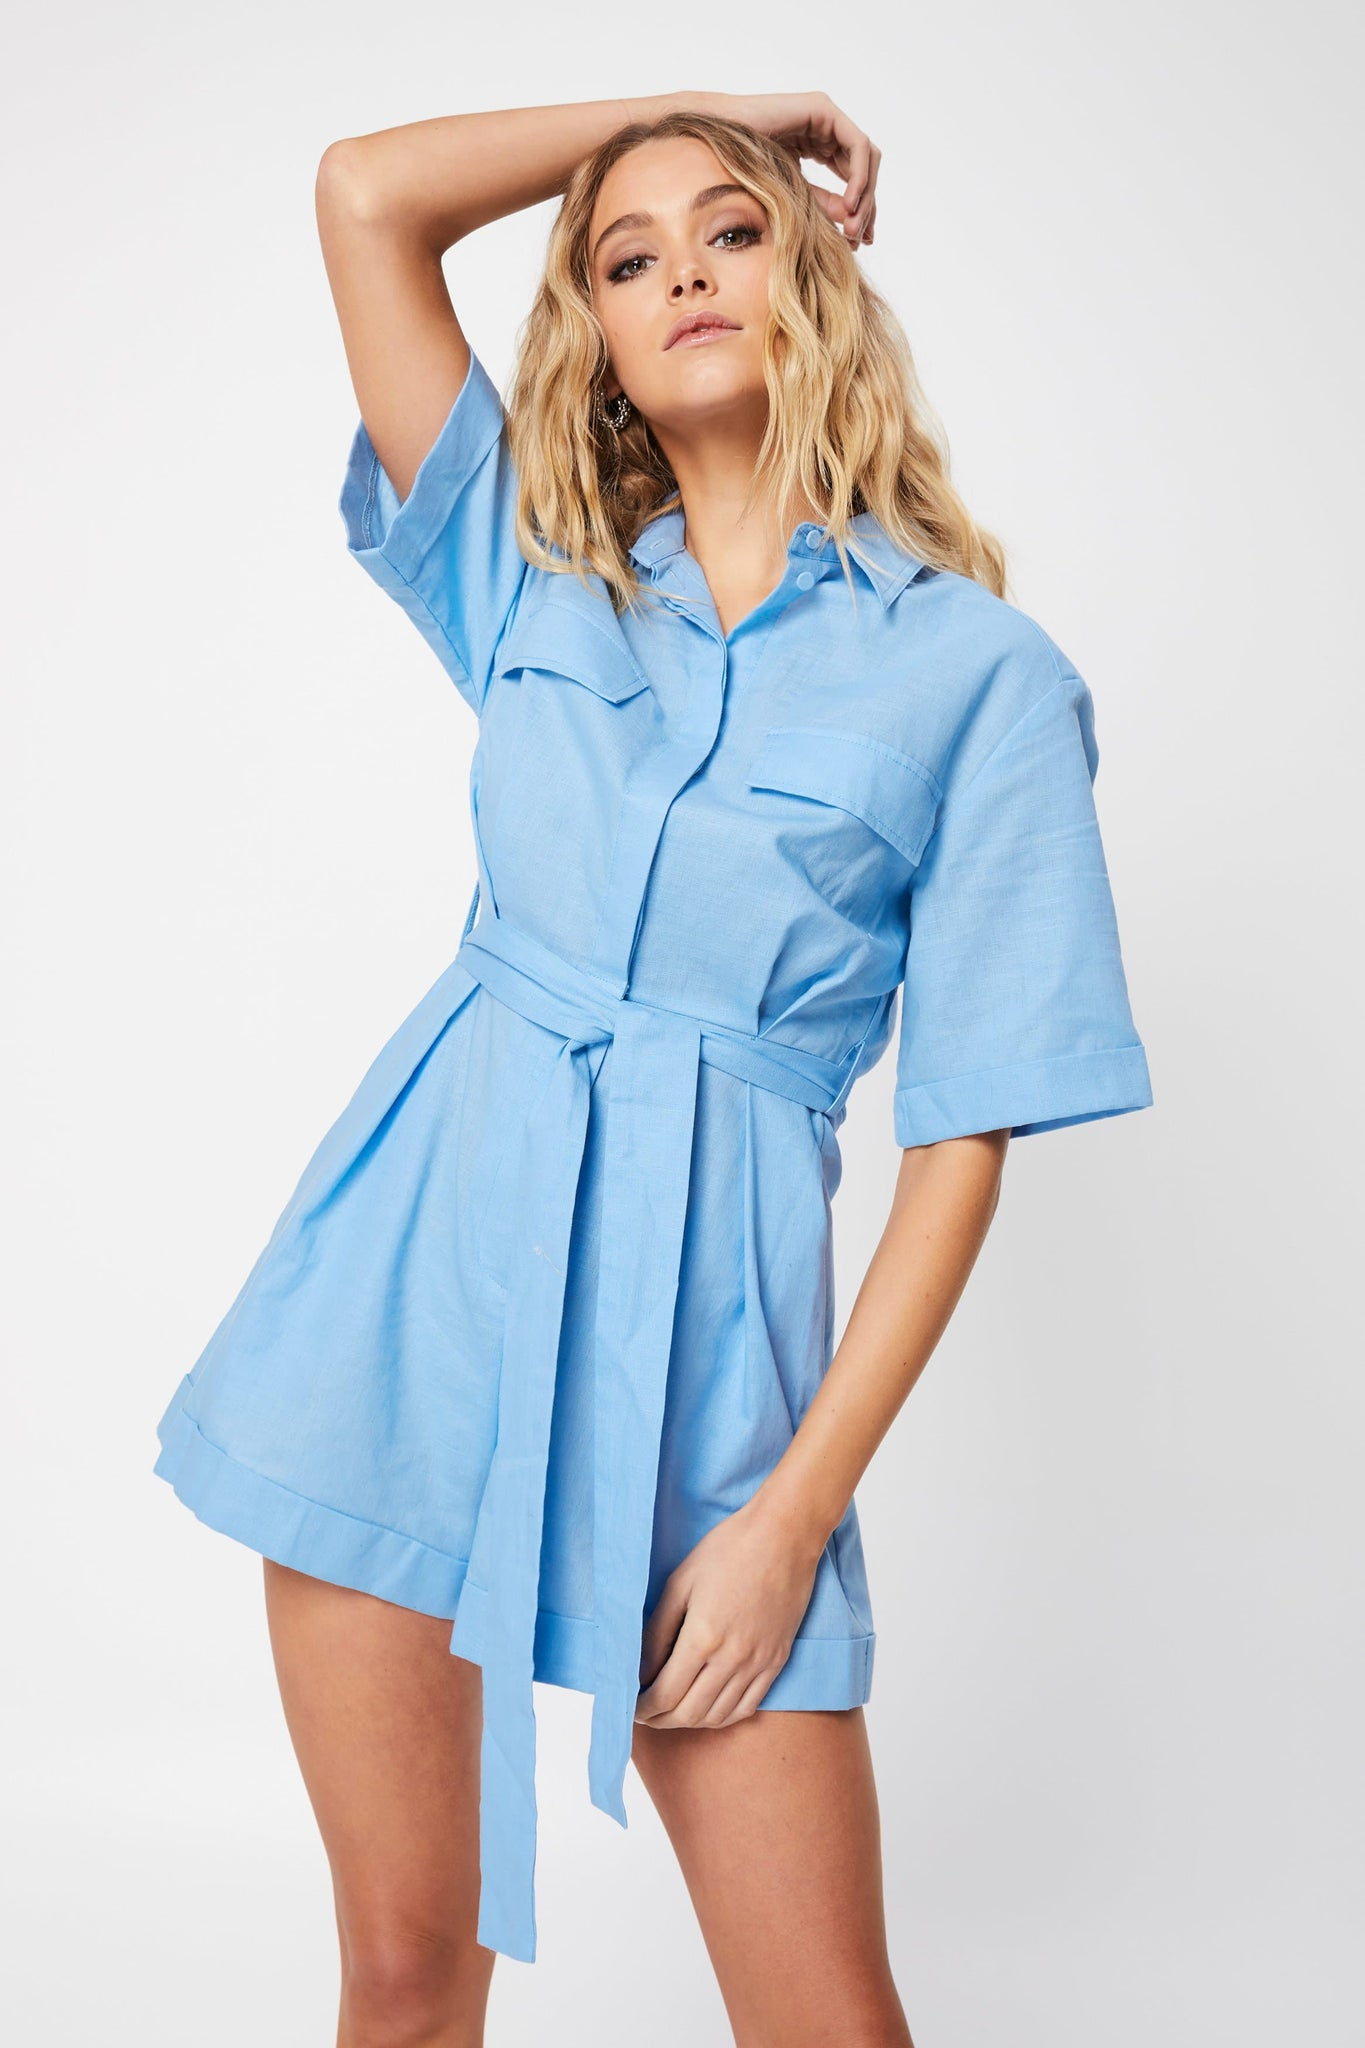 The Blue Light Playsuit